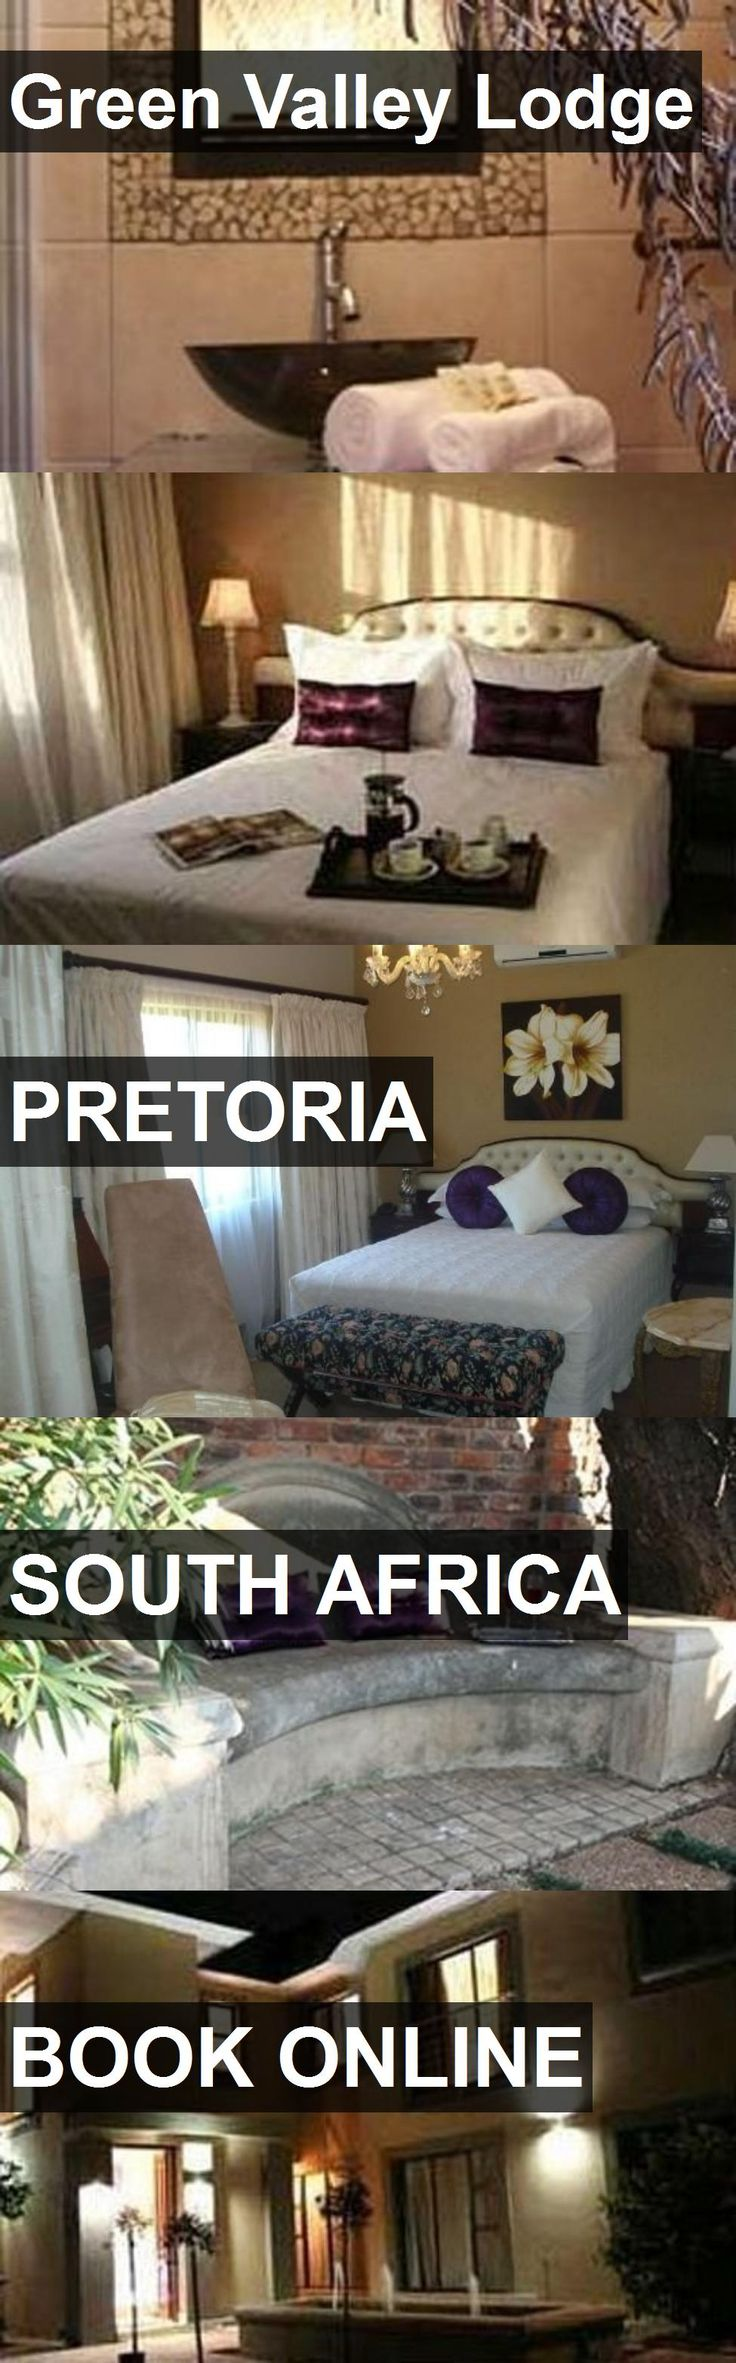 Hotel Green Valley Lodge in Pretoria, South Africa. For more information, photos, reviews and best prices please follow the link. #SouthAfrica #Pretoria #GreenValleyLodge #hotel #travel #vacation